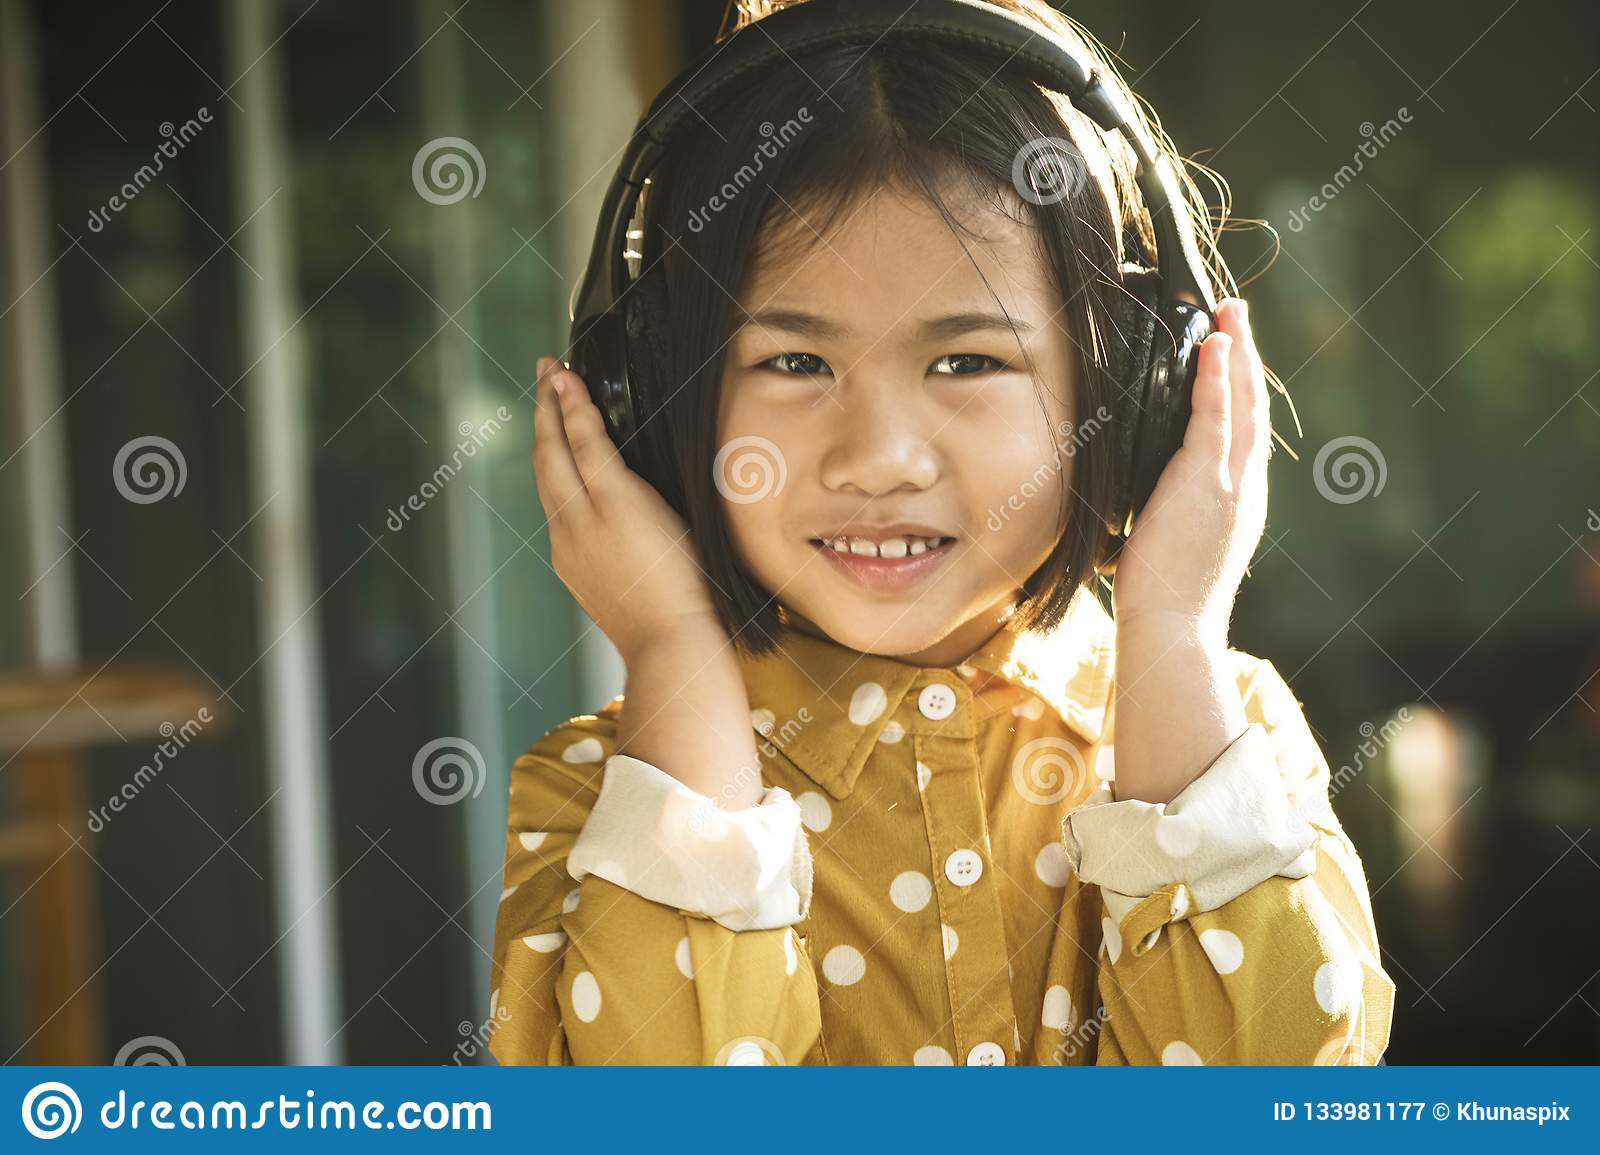 Happiness face of asian children listening music in head phone